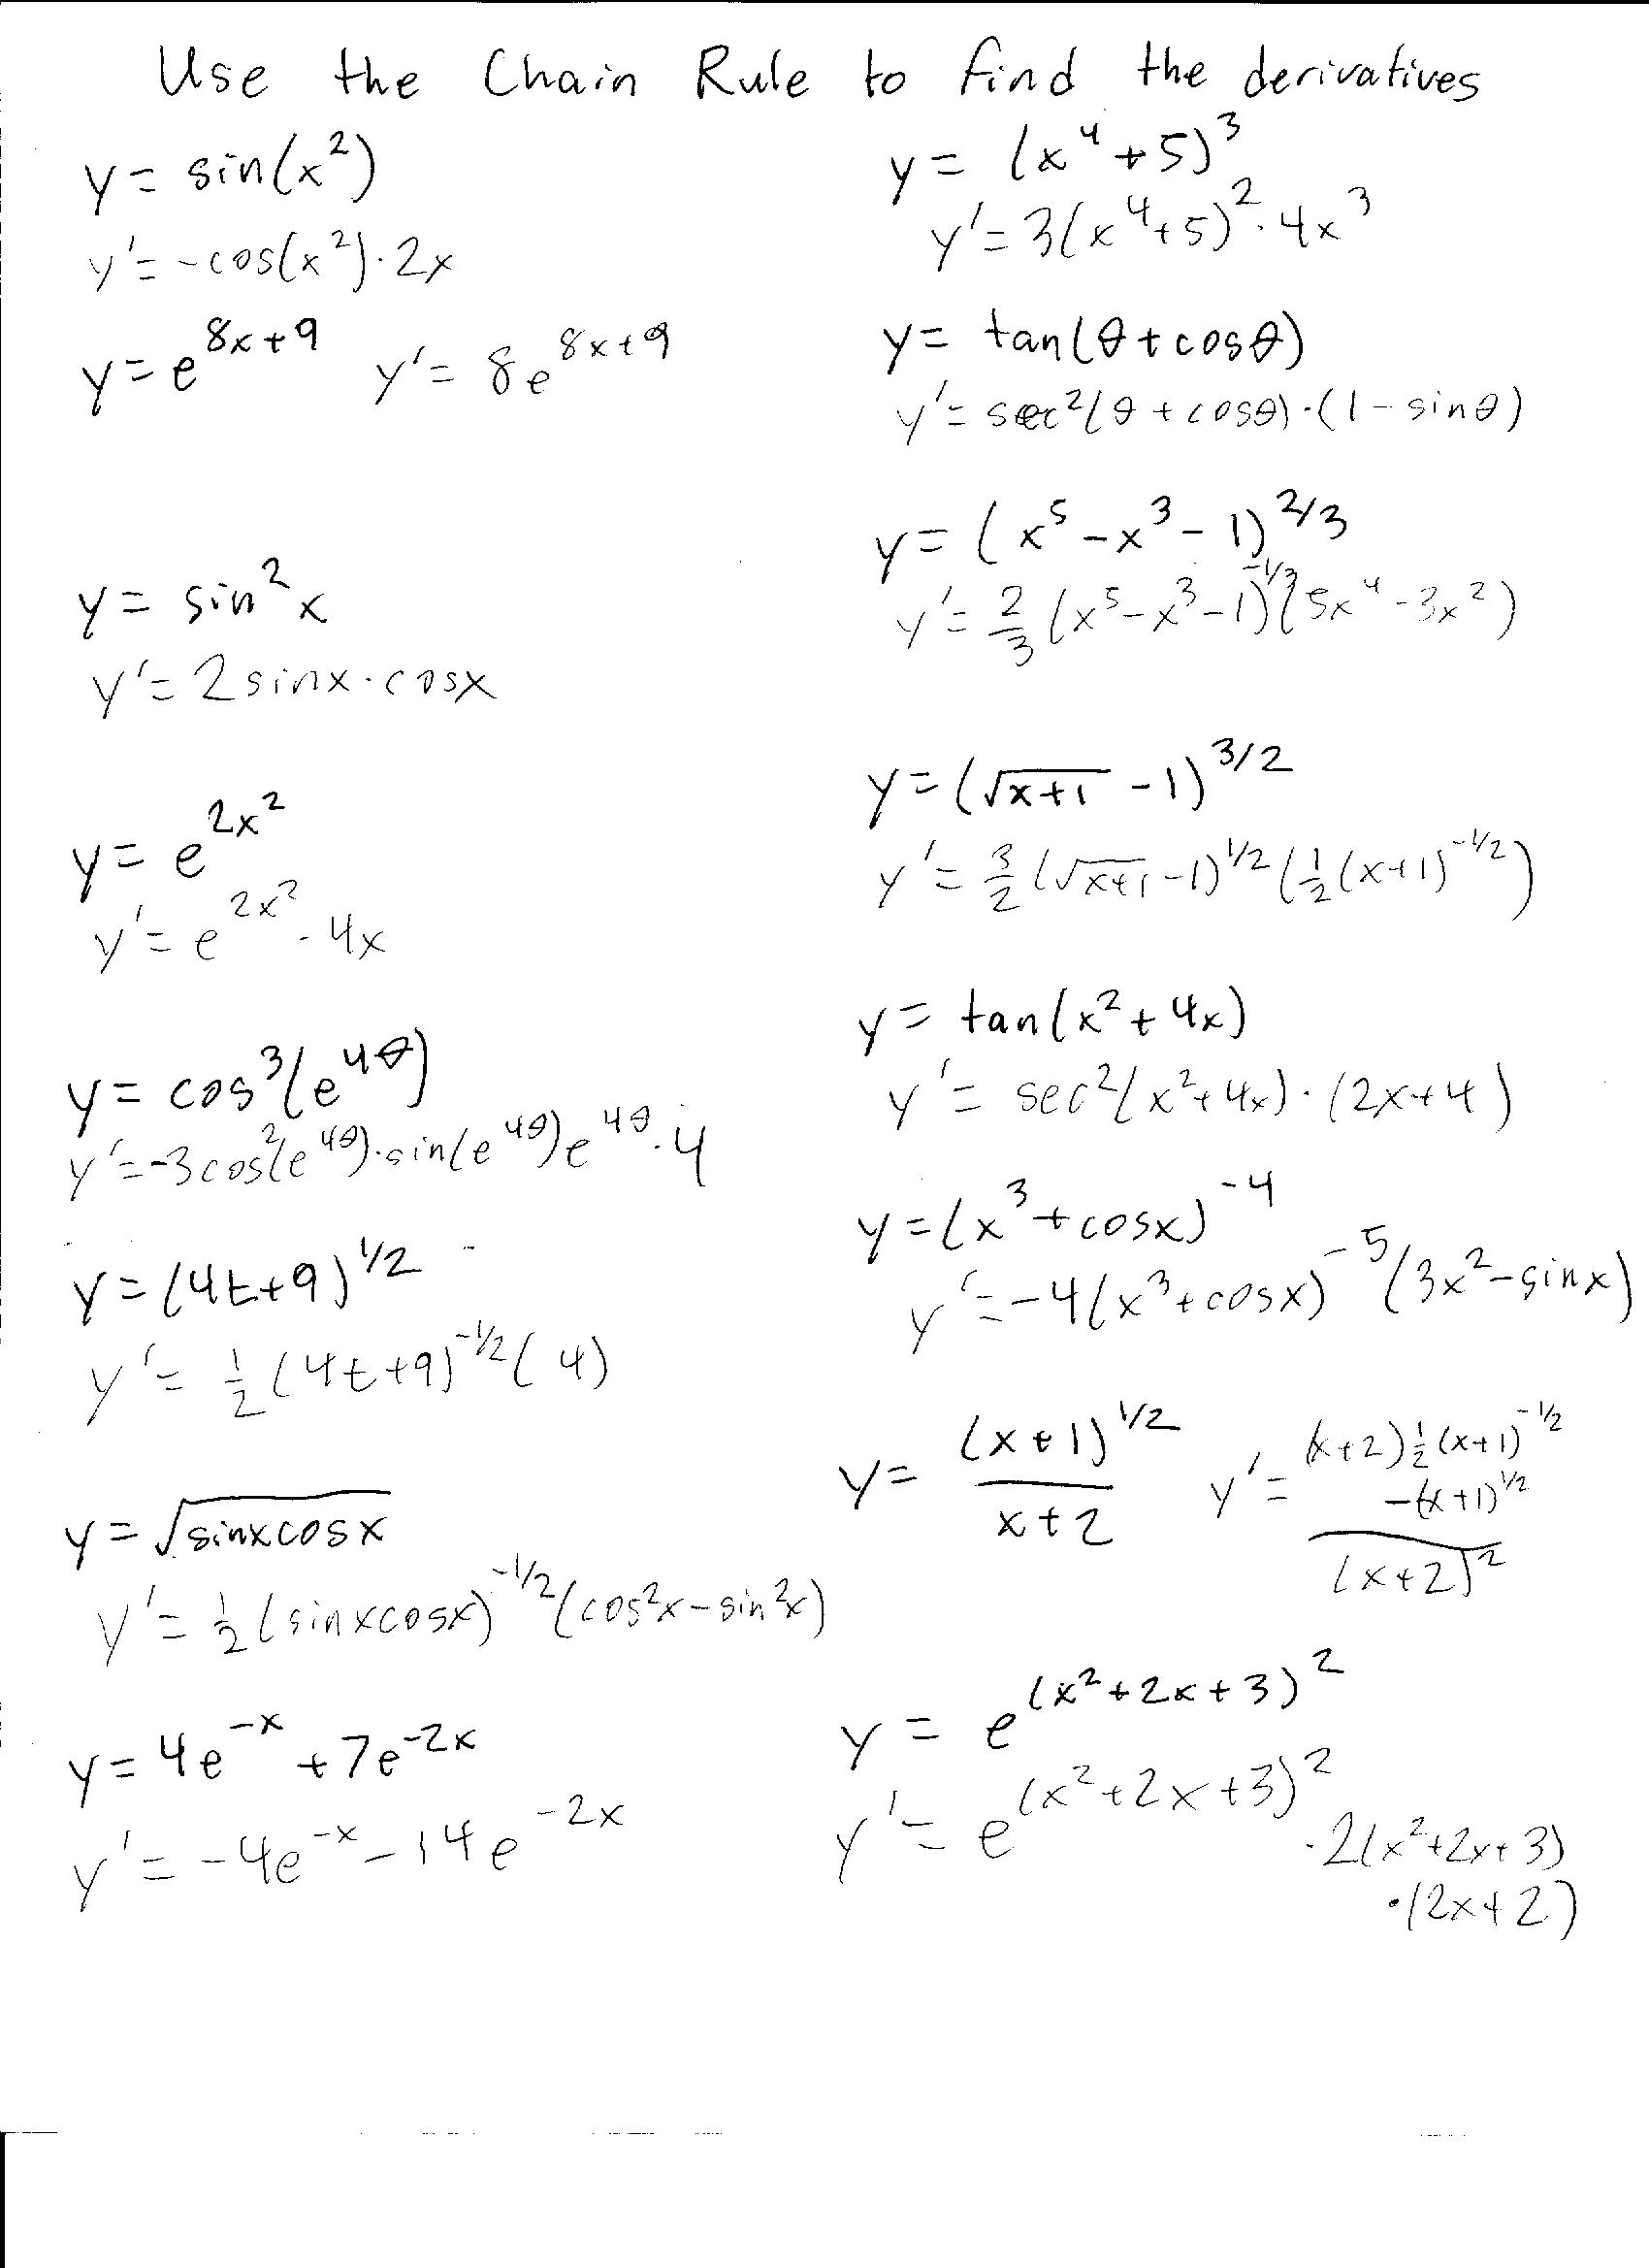 Worksheets Chain Rule Worksheet quiz 5 and 6 solutions worksheet eric lake chain rule worksheet